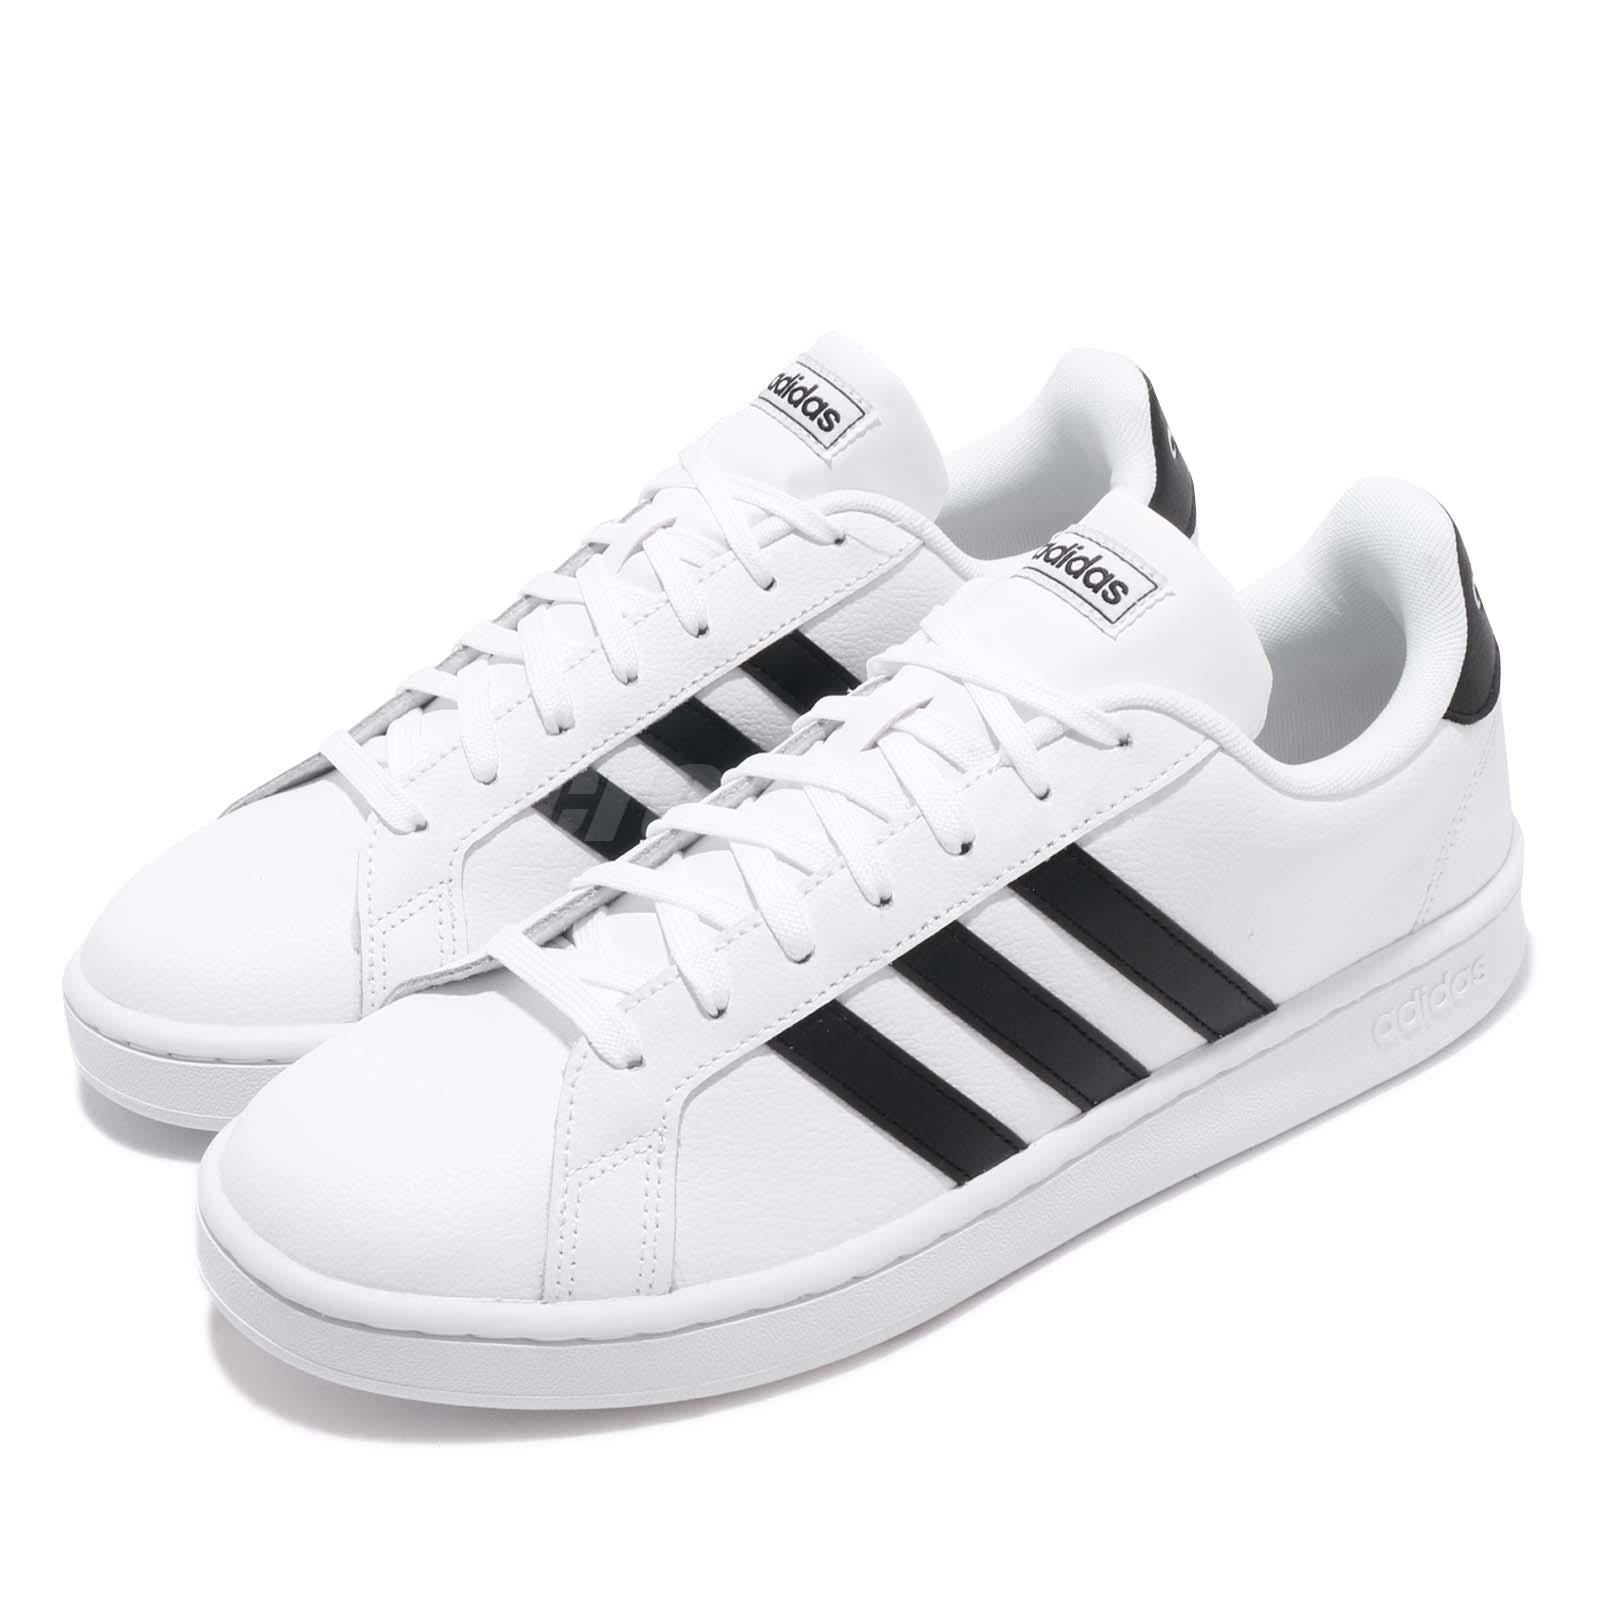 Casual White Court Lifestyle Grand Men Shoes Adidas Classic